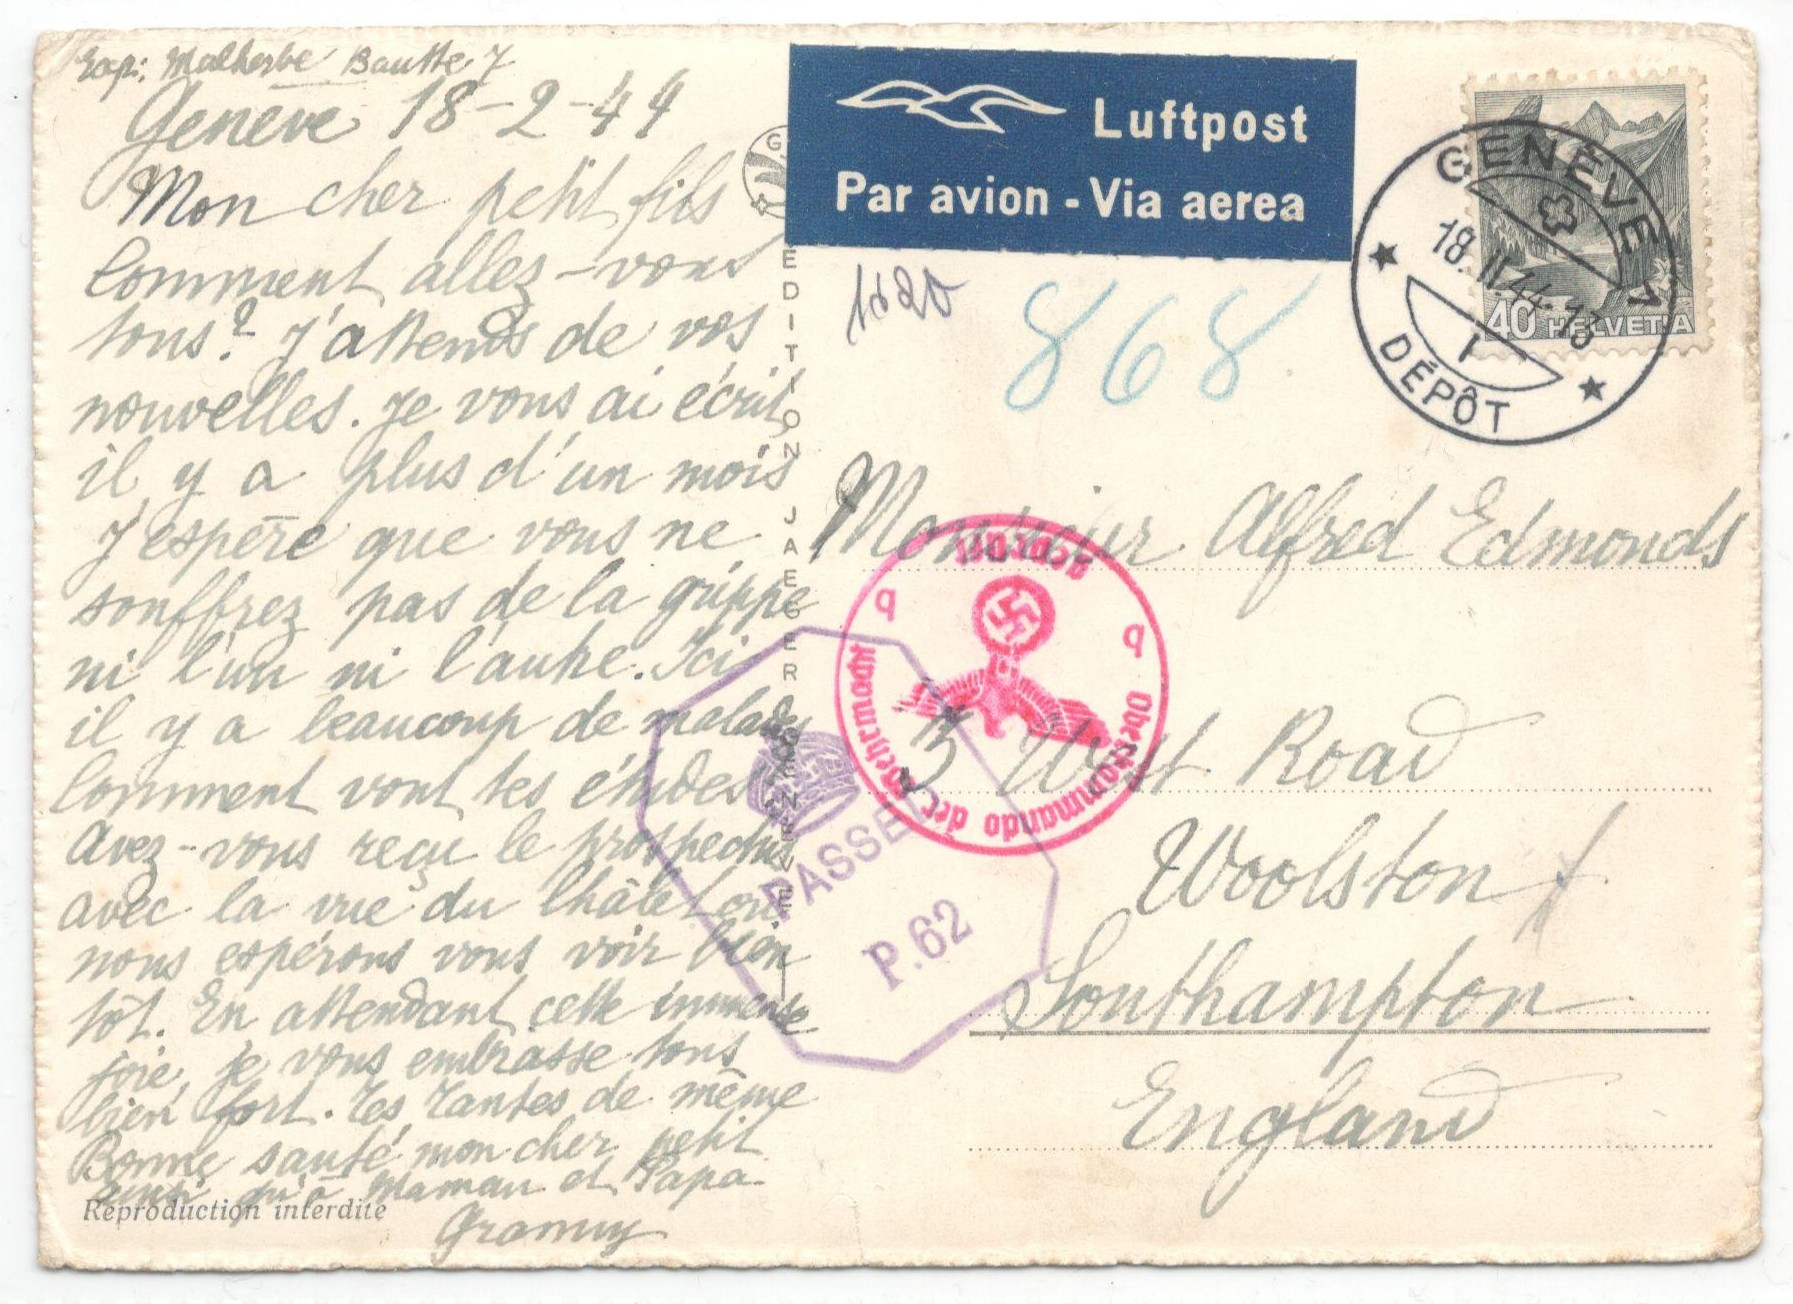 1944 COMITE INTERNATIONAL DE LA CROIX ROUGE GENEVE - POSTED 1944 PASSED BY CENSOR - Image 2 of 2